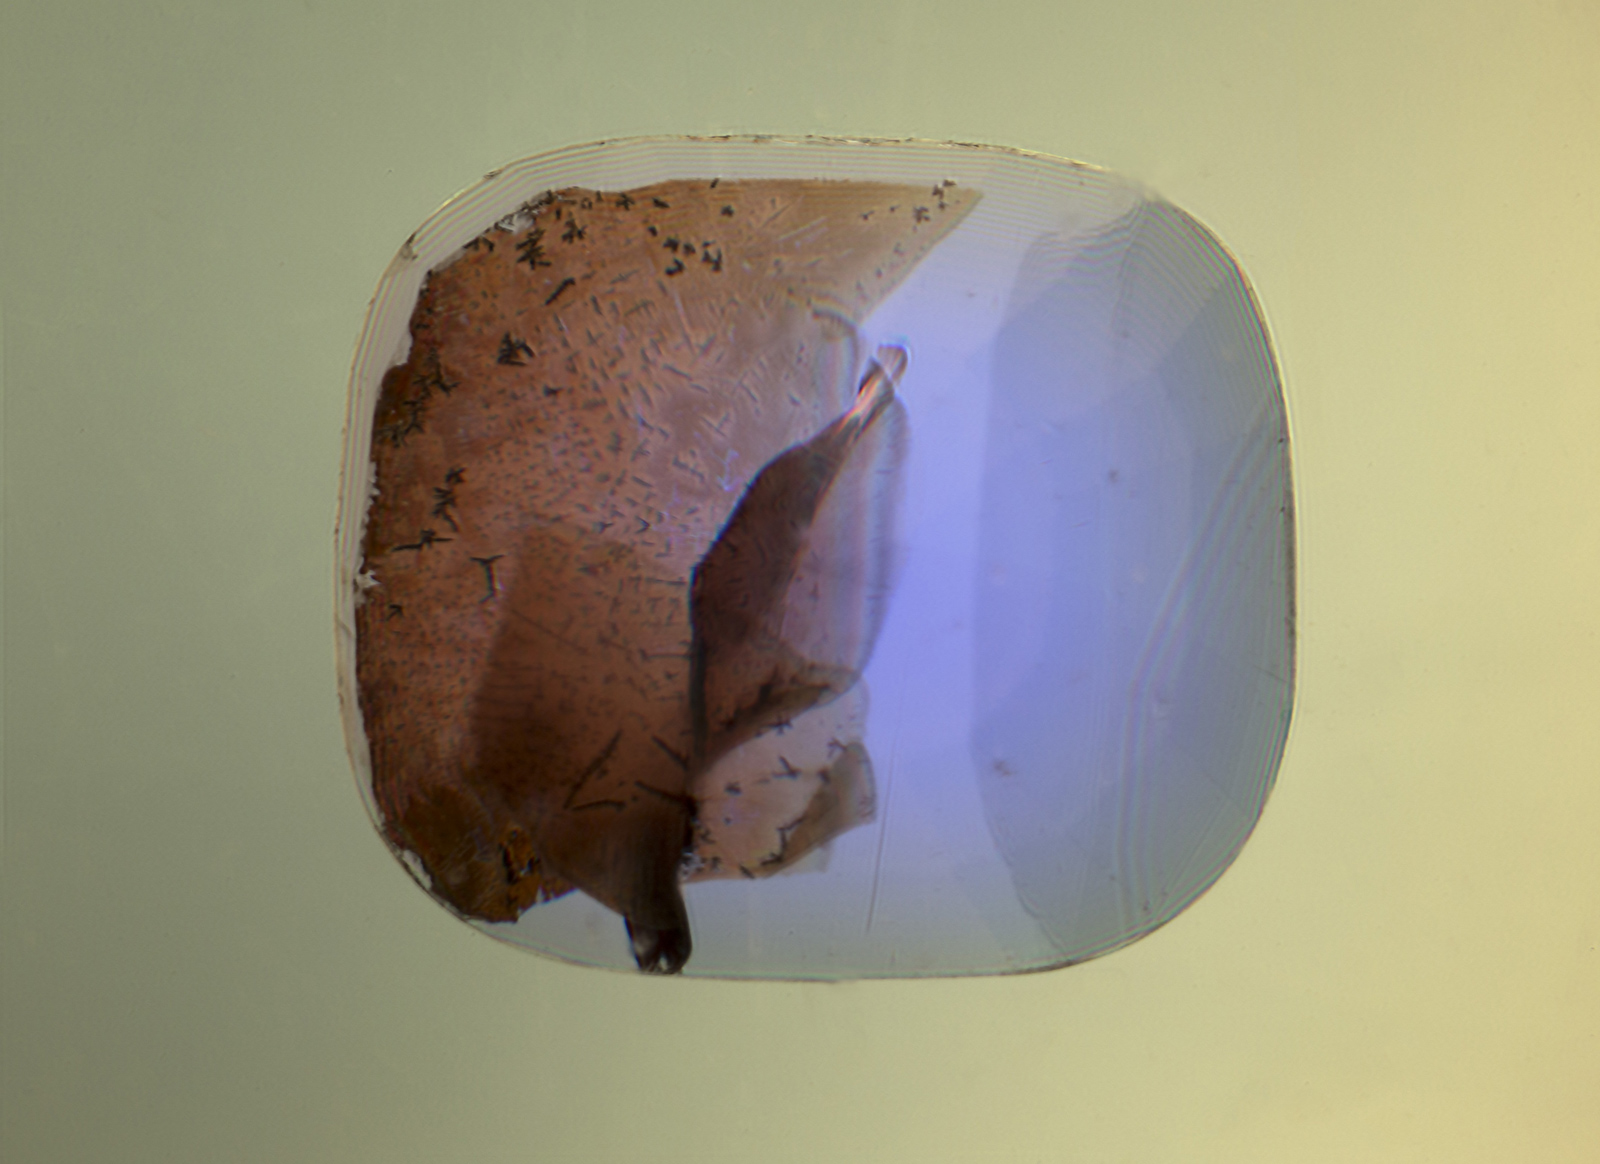 When immersed in di-iodomethane (methylene iodide), the extent of the fissure becomes readily apparent. Adding polarized light reveals Plato-Sandmeier twinning. A dislocation needle can also be seen at the lower center of the stone.